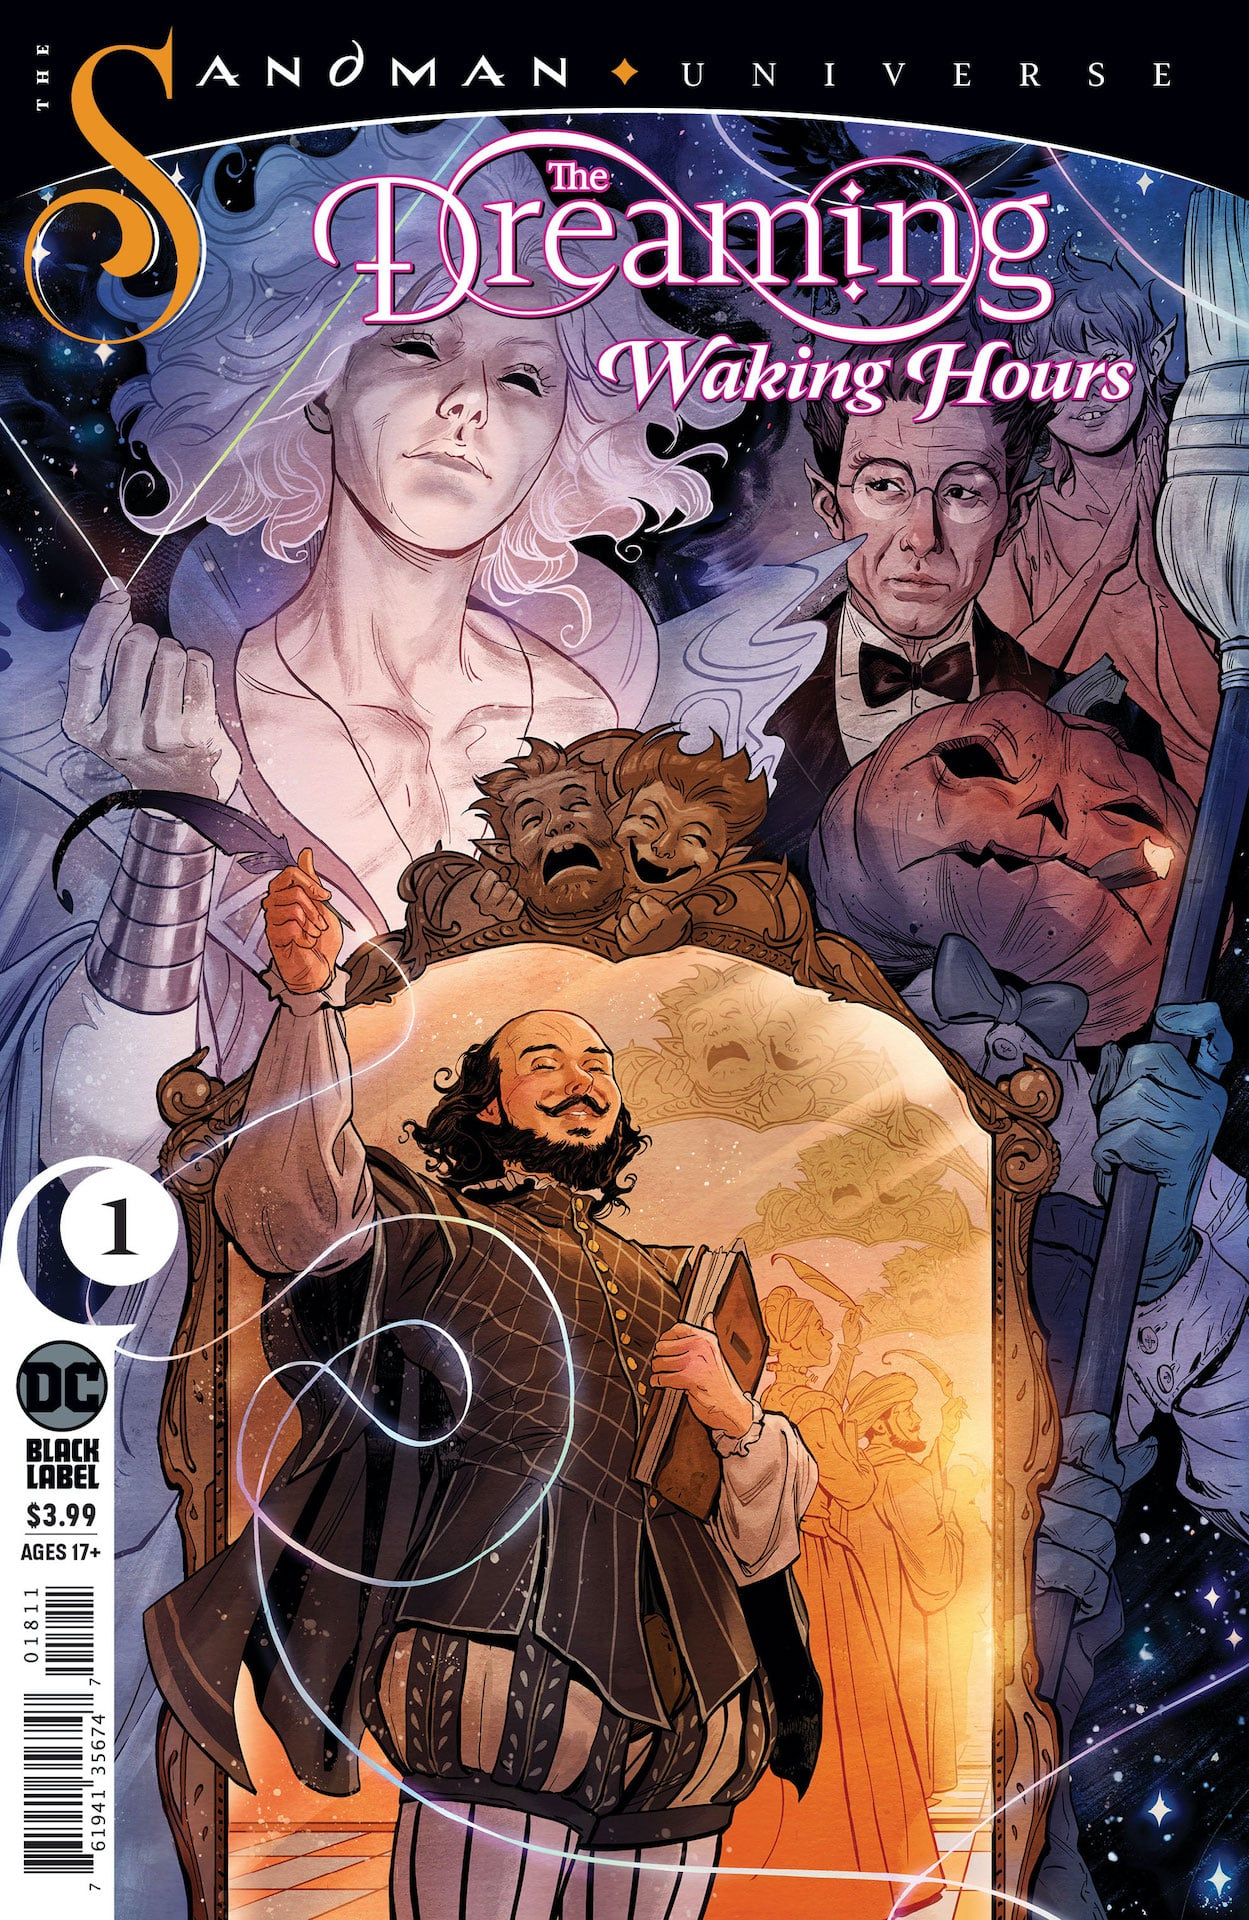 A new chapter in the Sandman saga begins with an all-new The Dreaming series populated by faces both familiar and new!